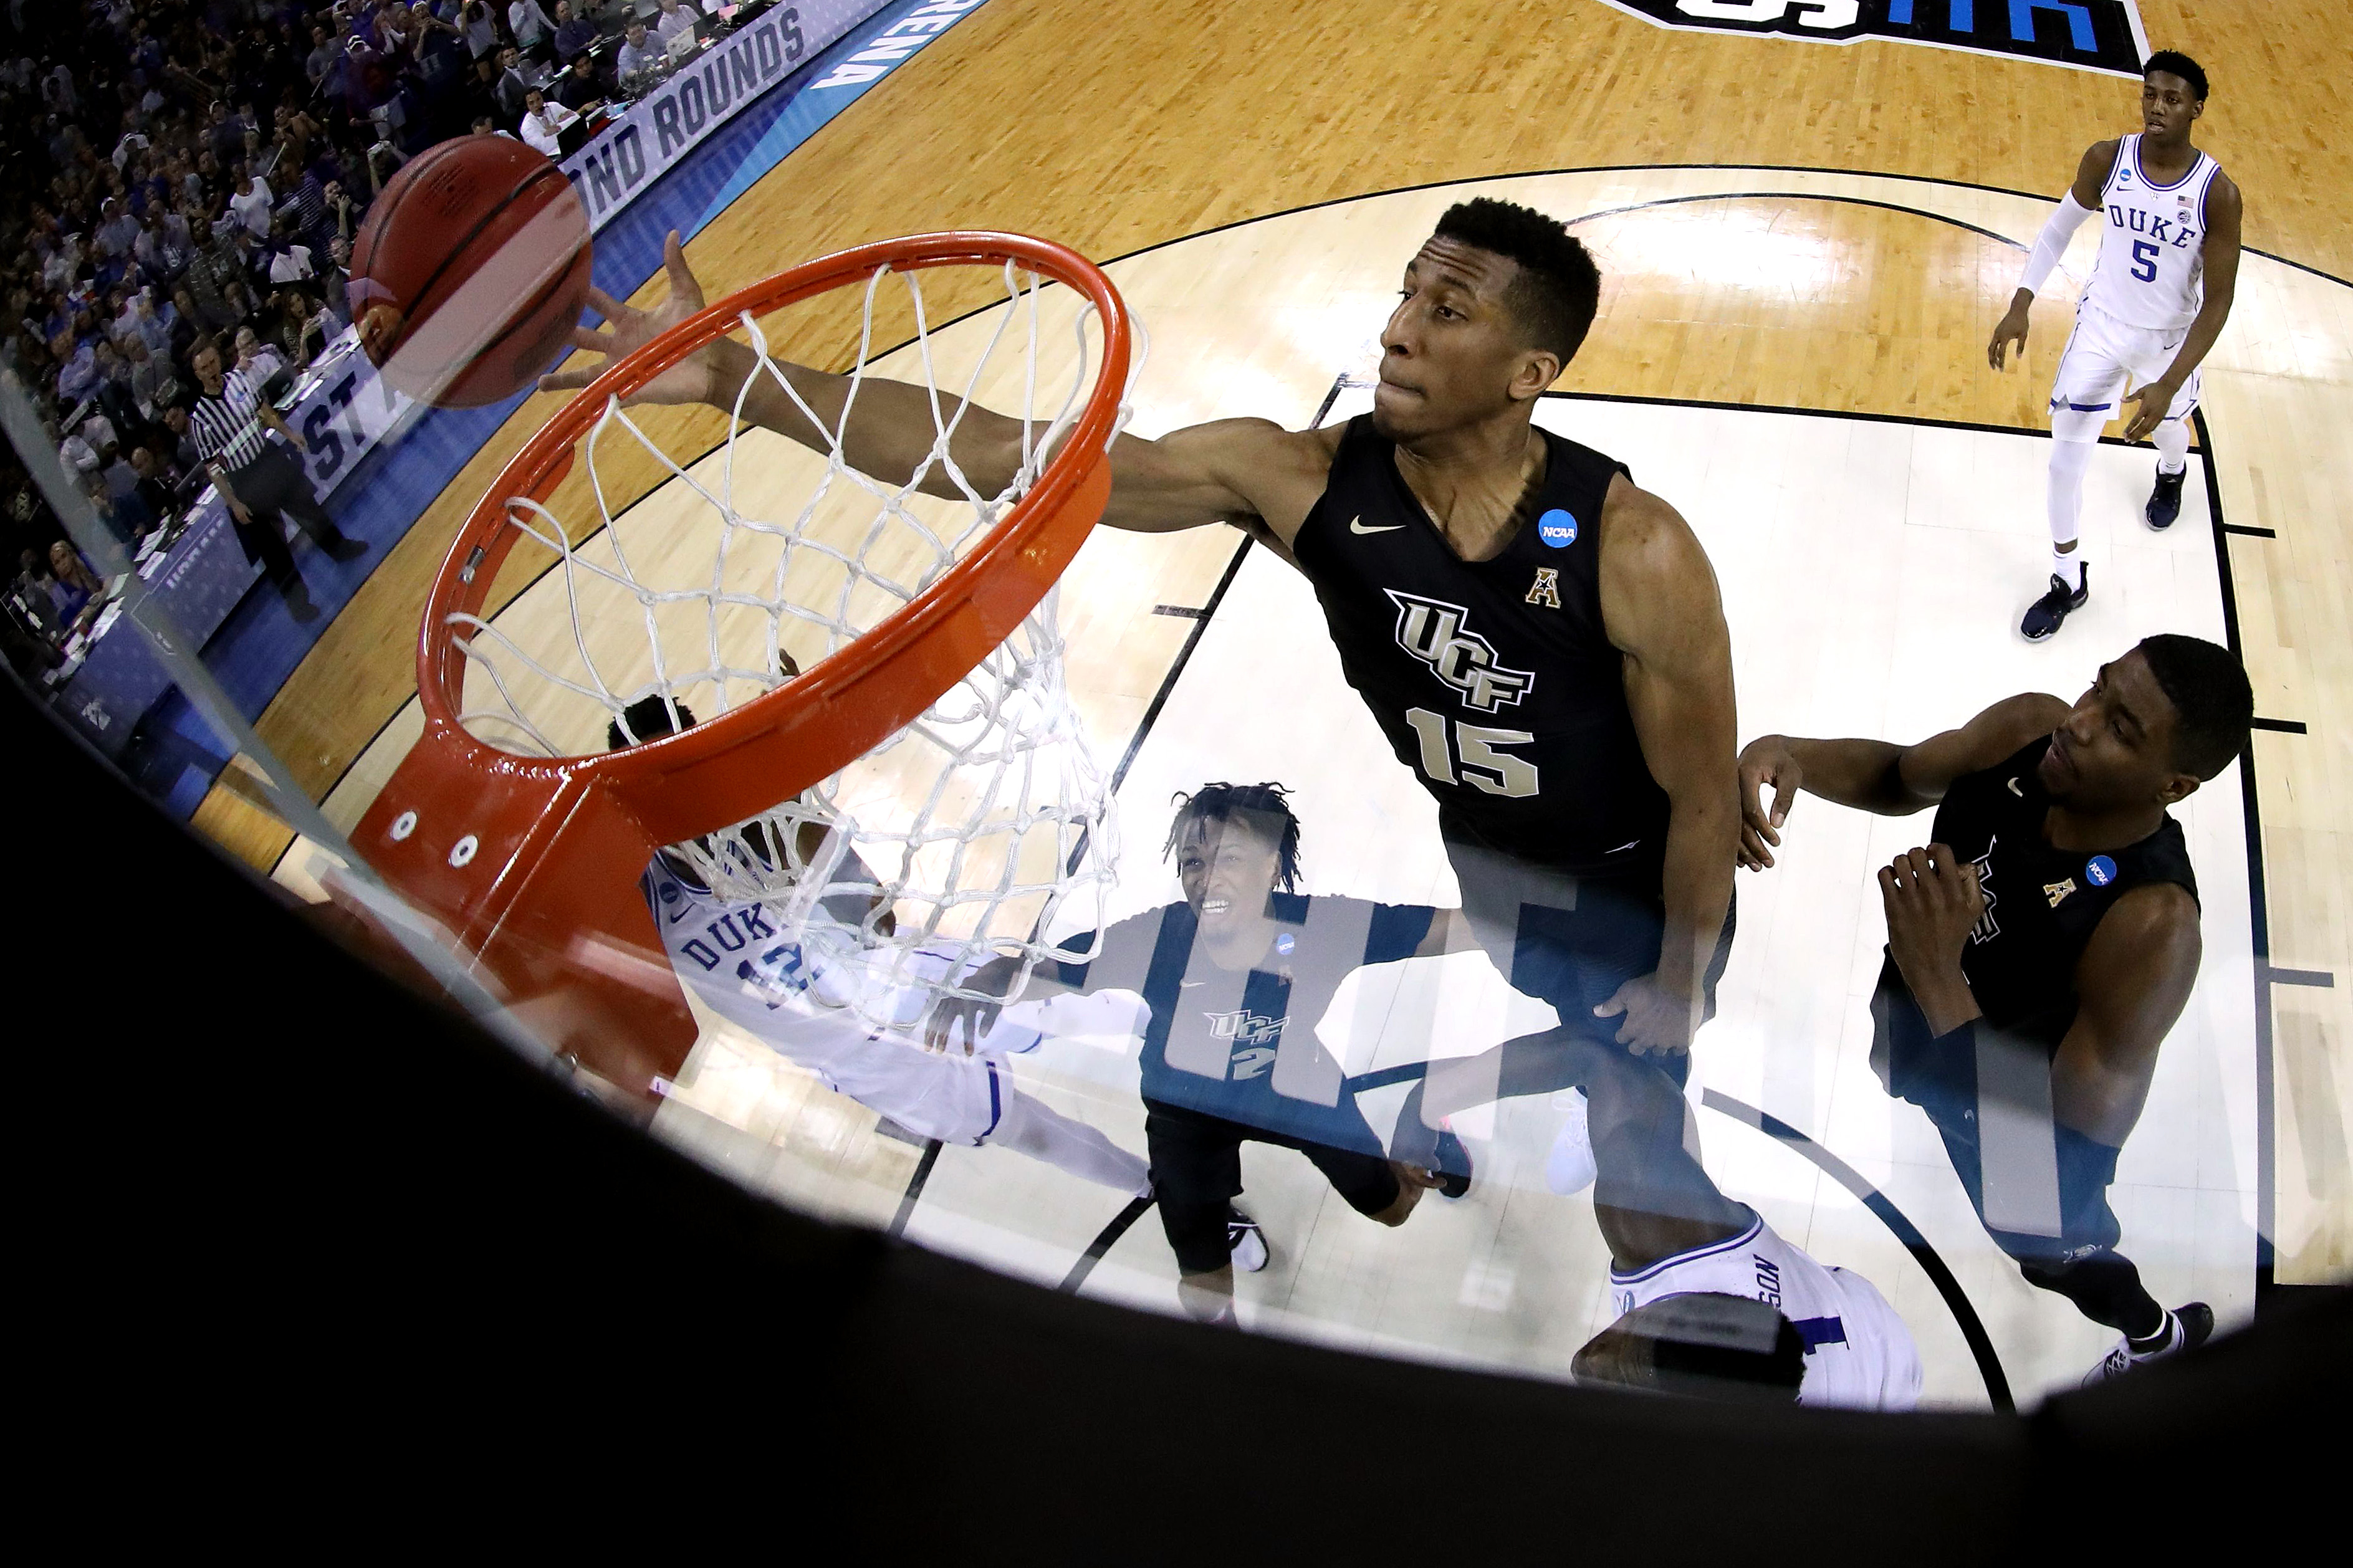 Duke vs. UCF final score: New Jersey sportsbook offers one-time refund after agonizing finish